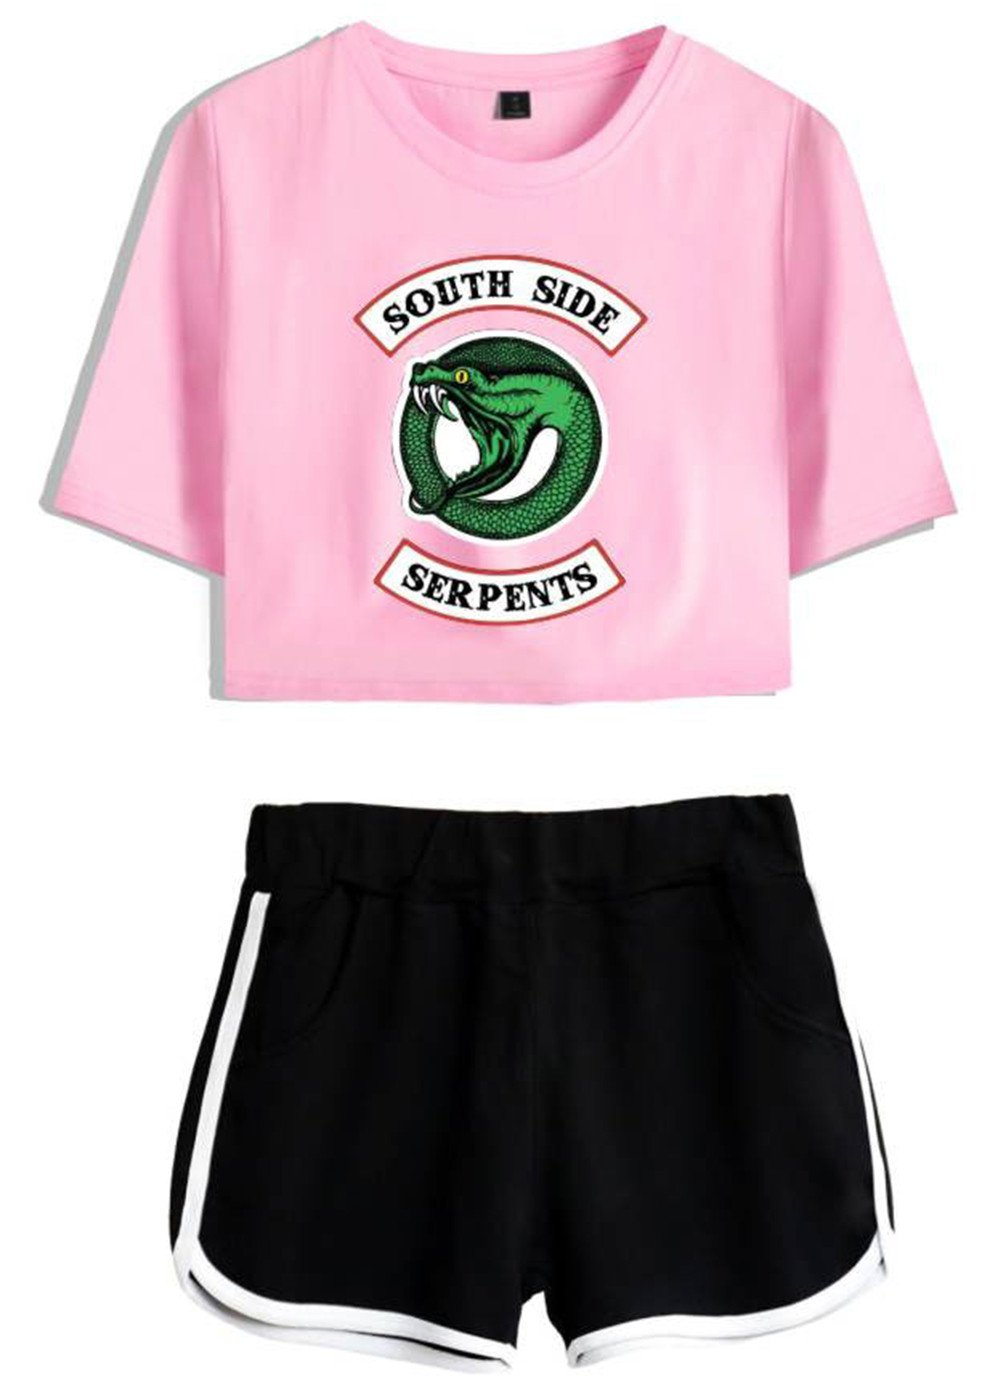 SERAPHY Riverdale Clothing Crop Top T-Shirt and Shorts Suit for Girls/Wowen 4892 Pink-Black L